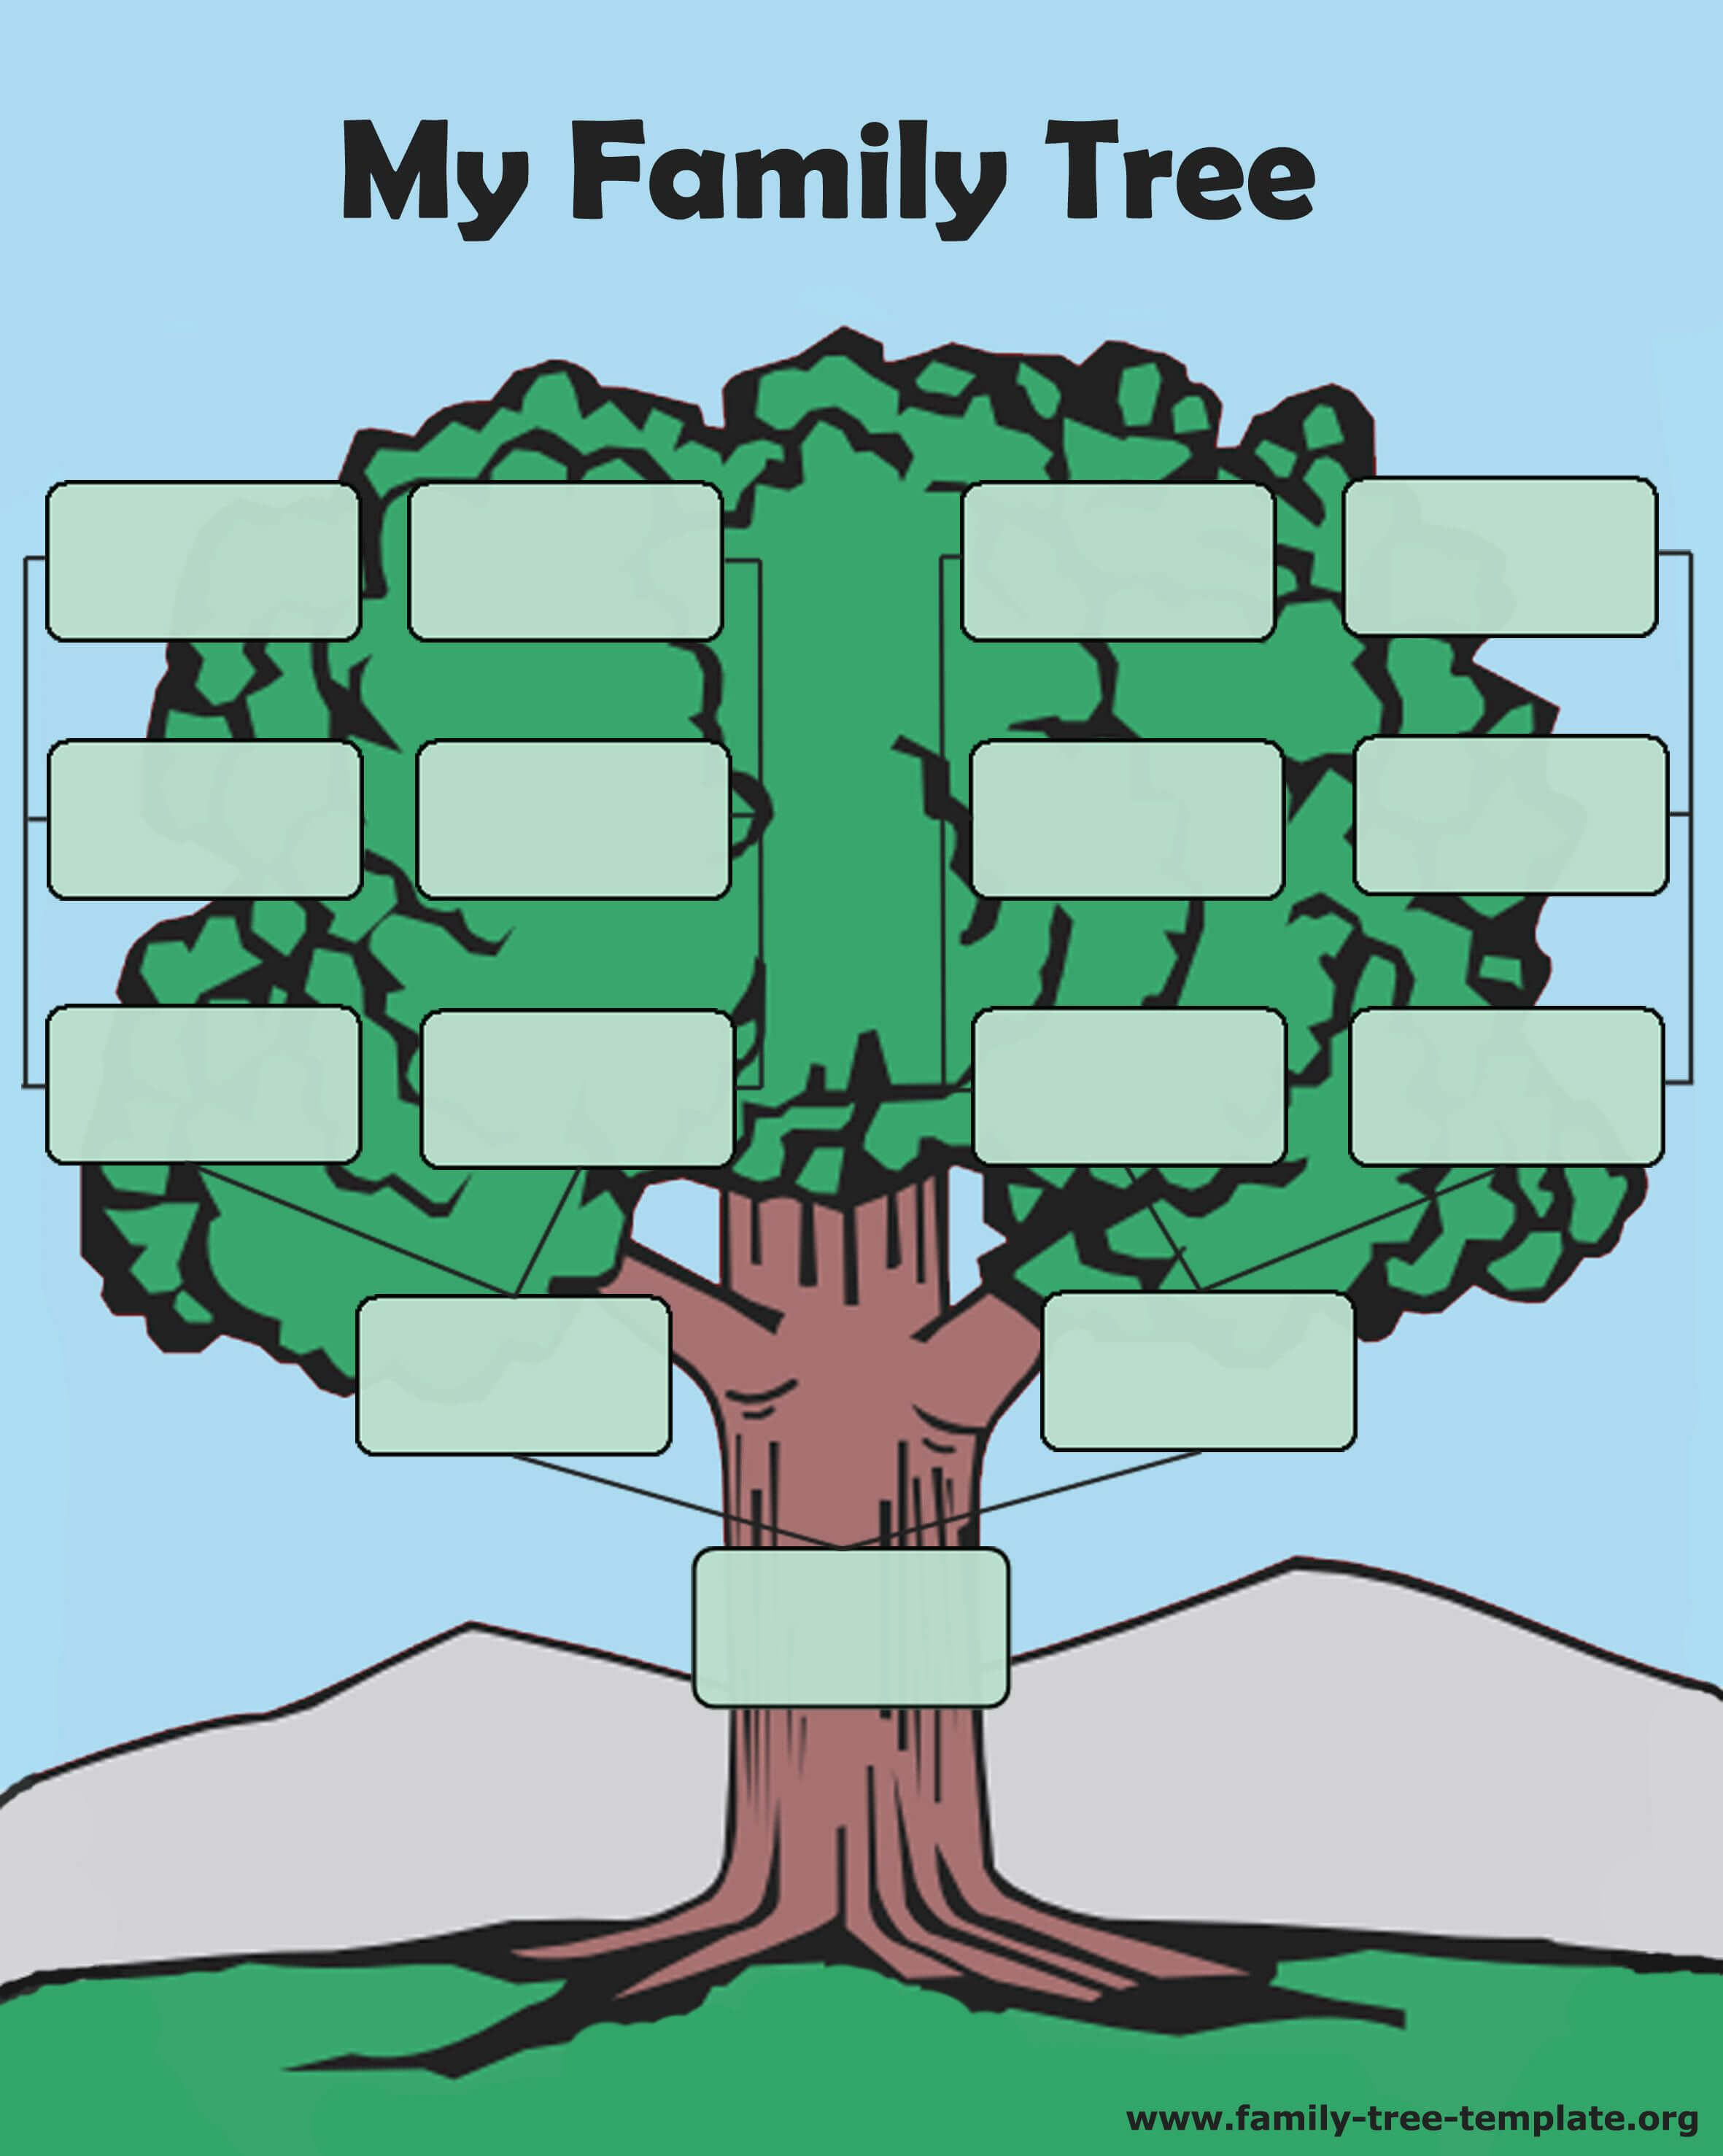 Tree Forms To Print And Fill Out Another Printable Oak Tree With Fill In The Blank Family Tree Template